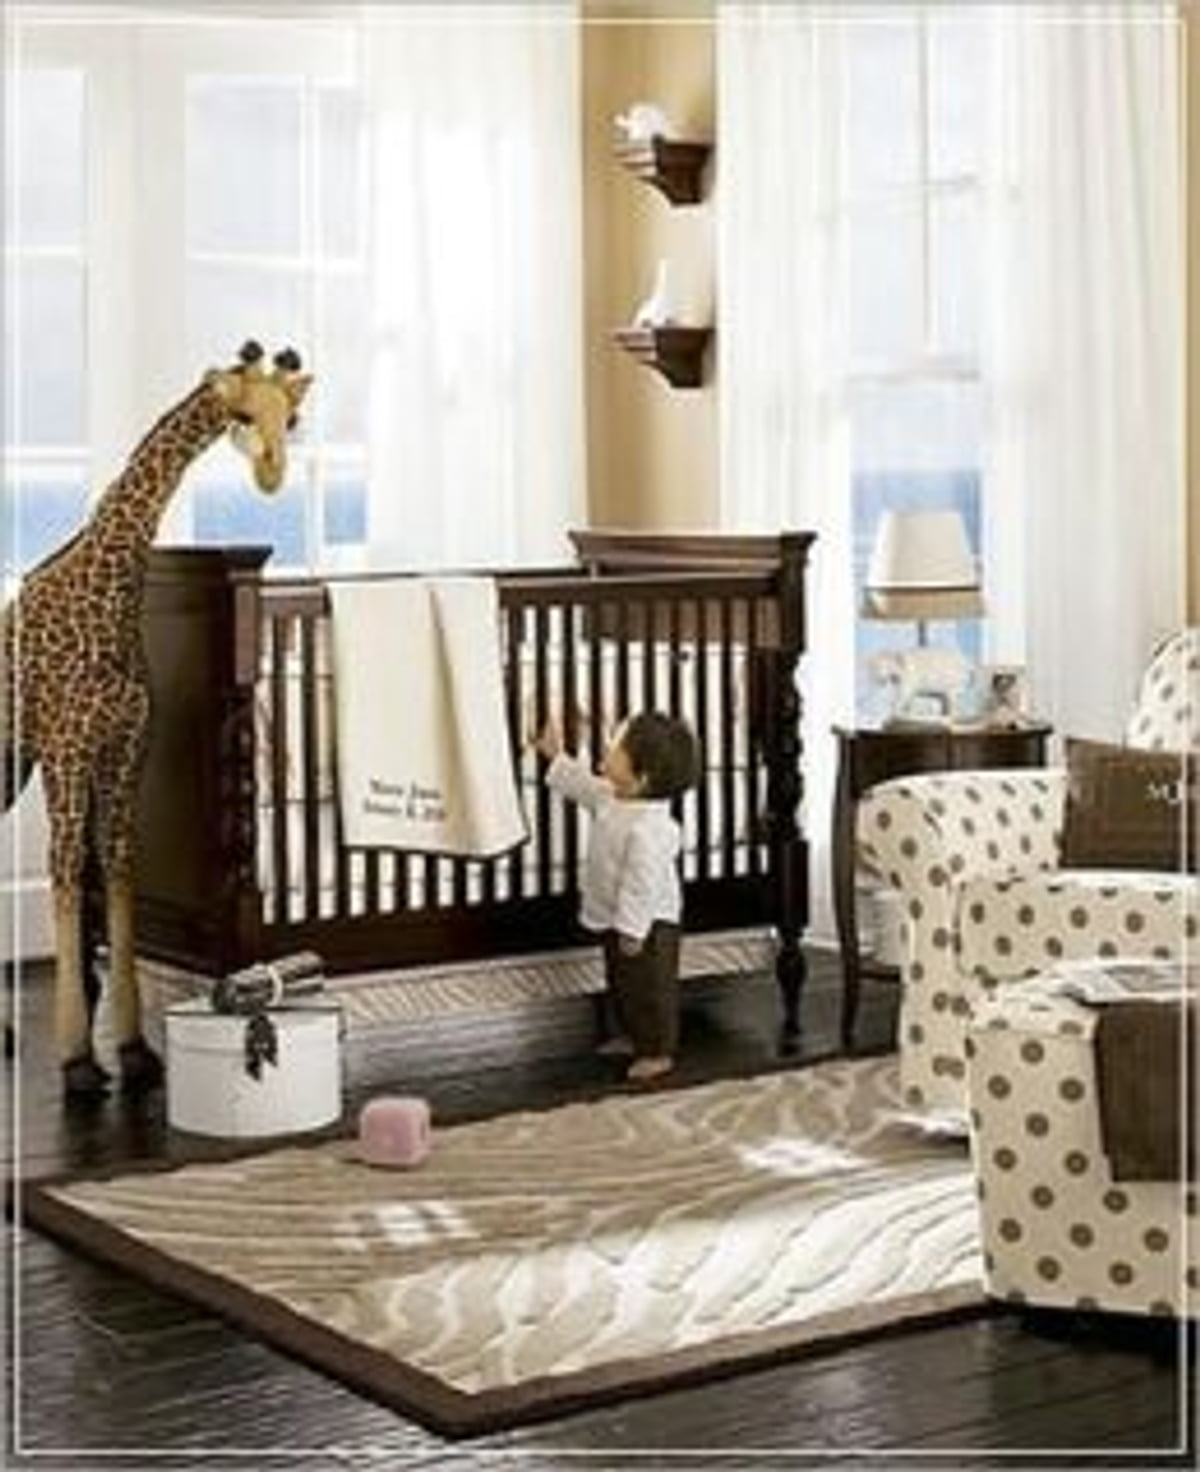 Decorating Your Baby Nursery For